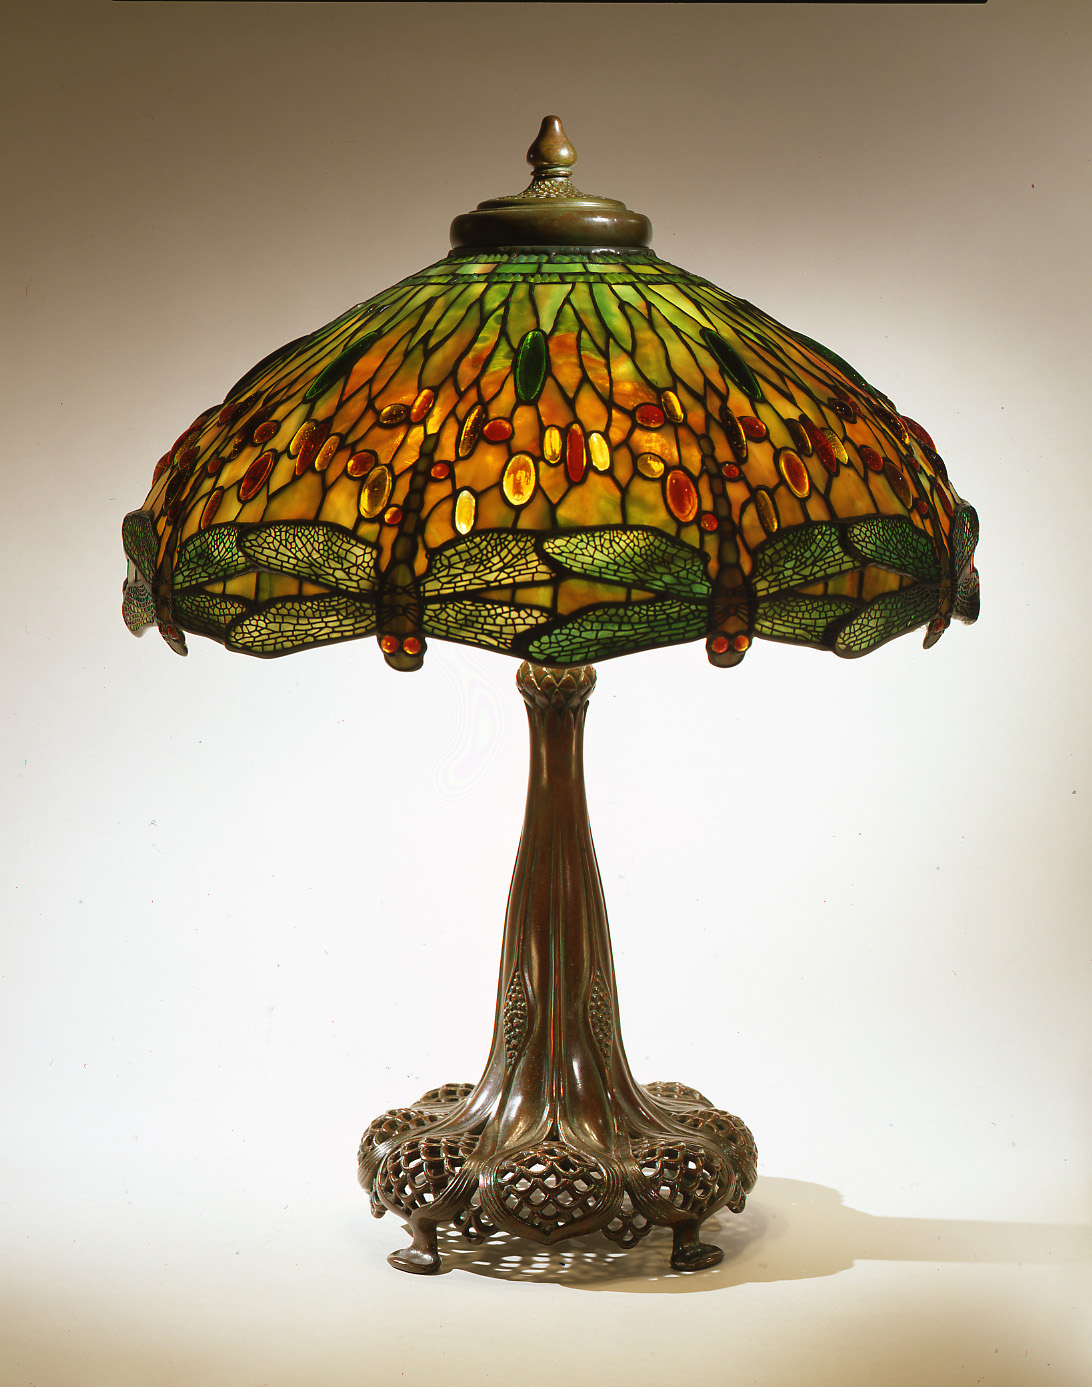 Dragonfly tiffany lamp embrace your homes in sparkle warisan combine the tiffany dragonfly lamp with any room design arubaitofo Gallery